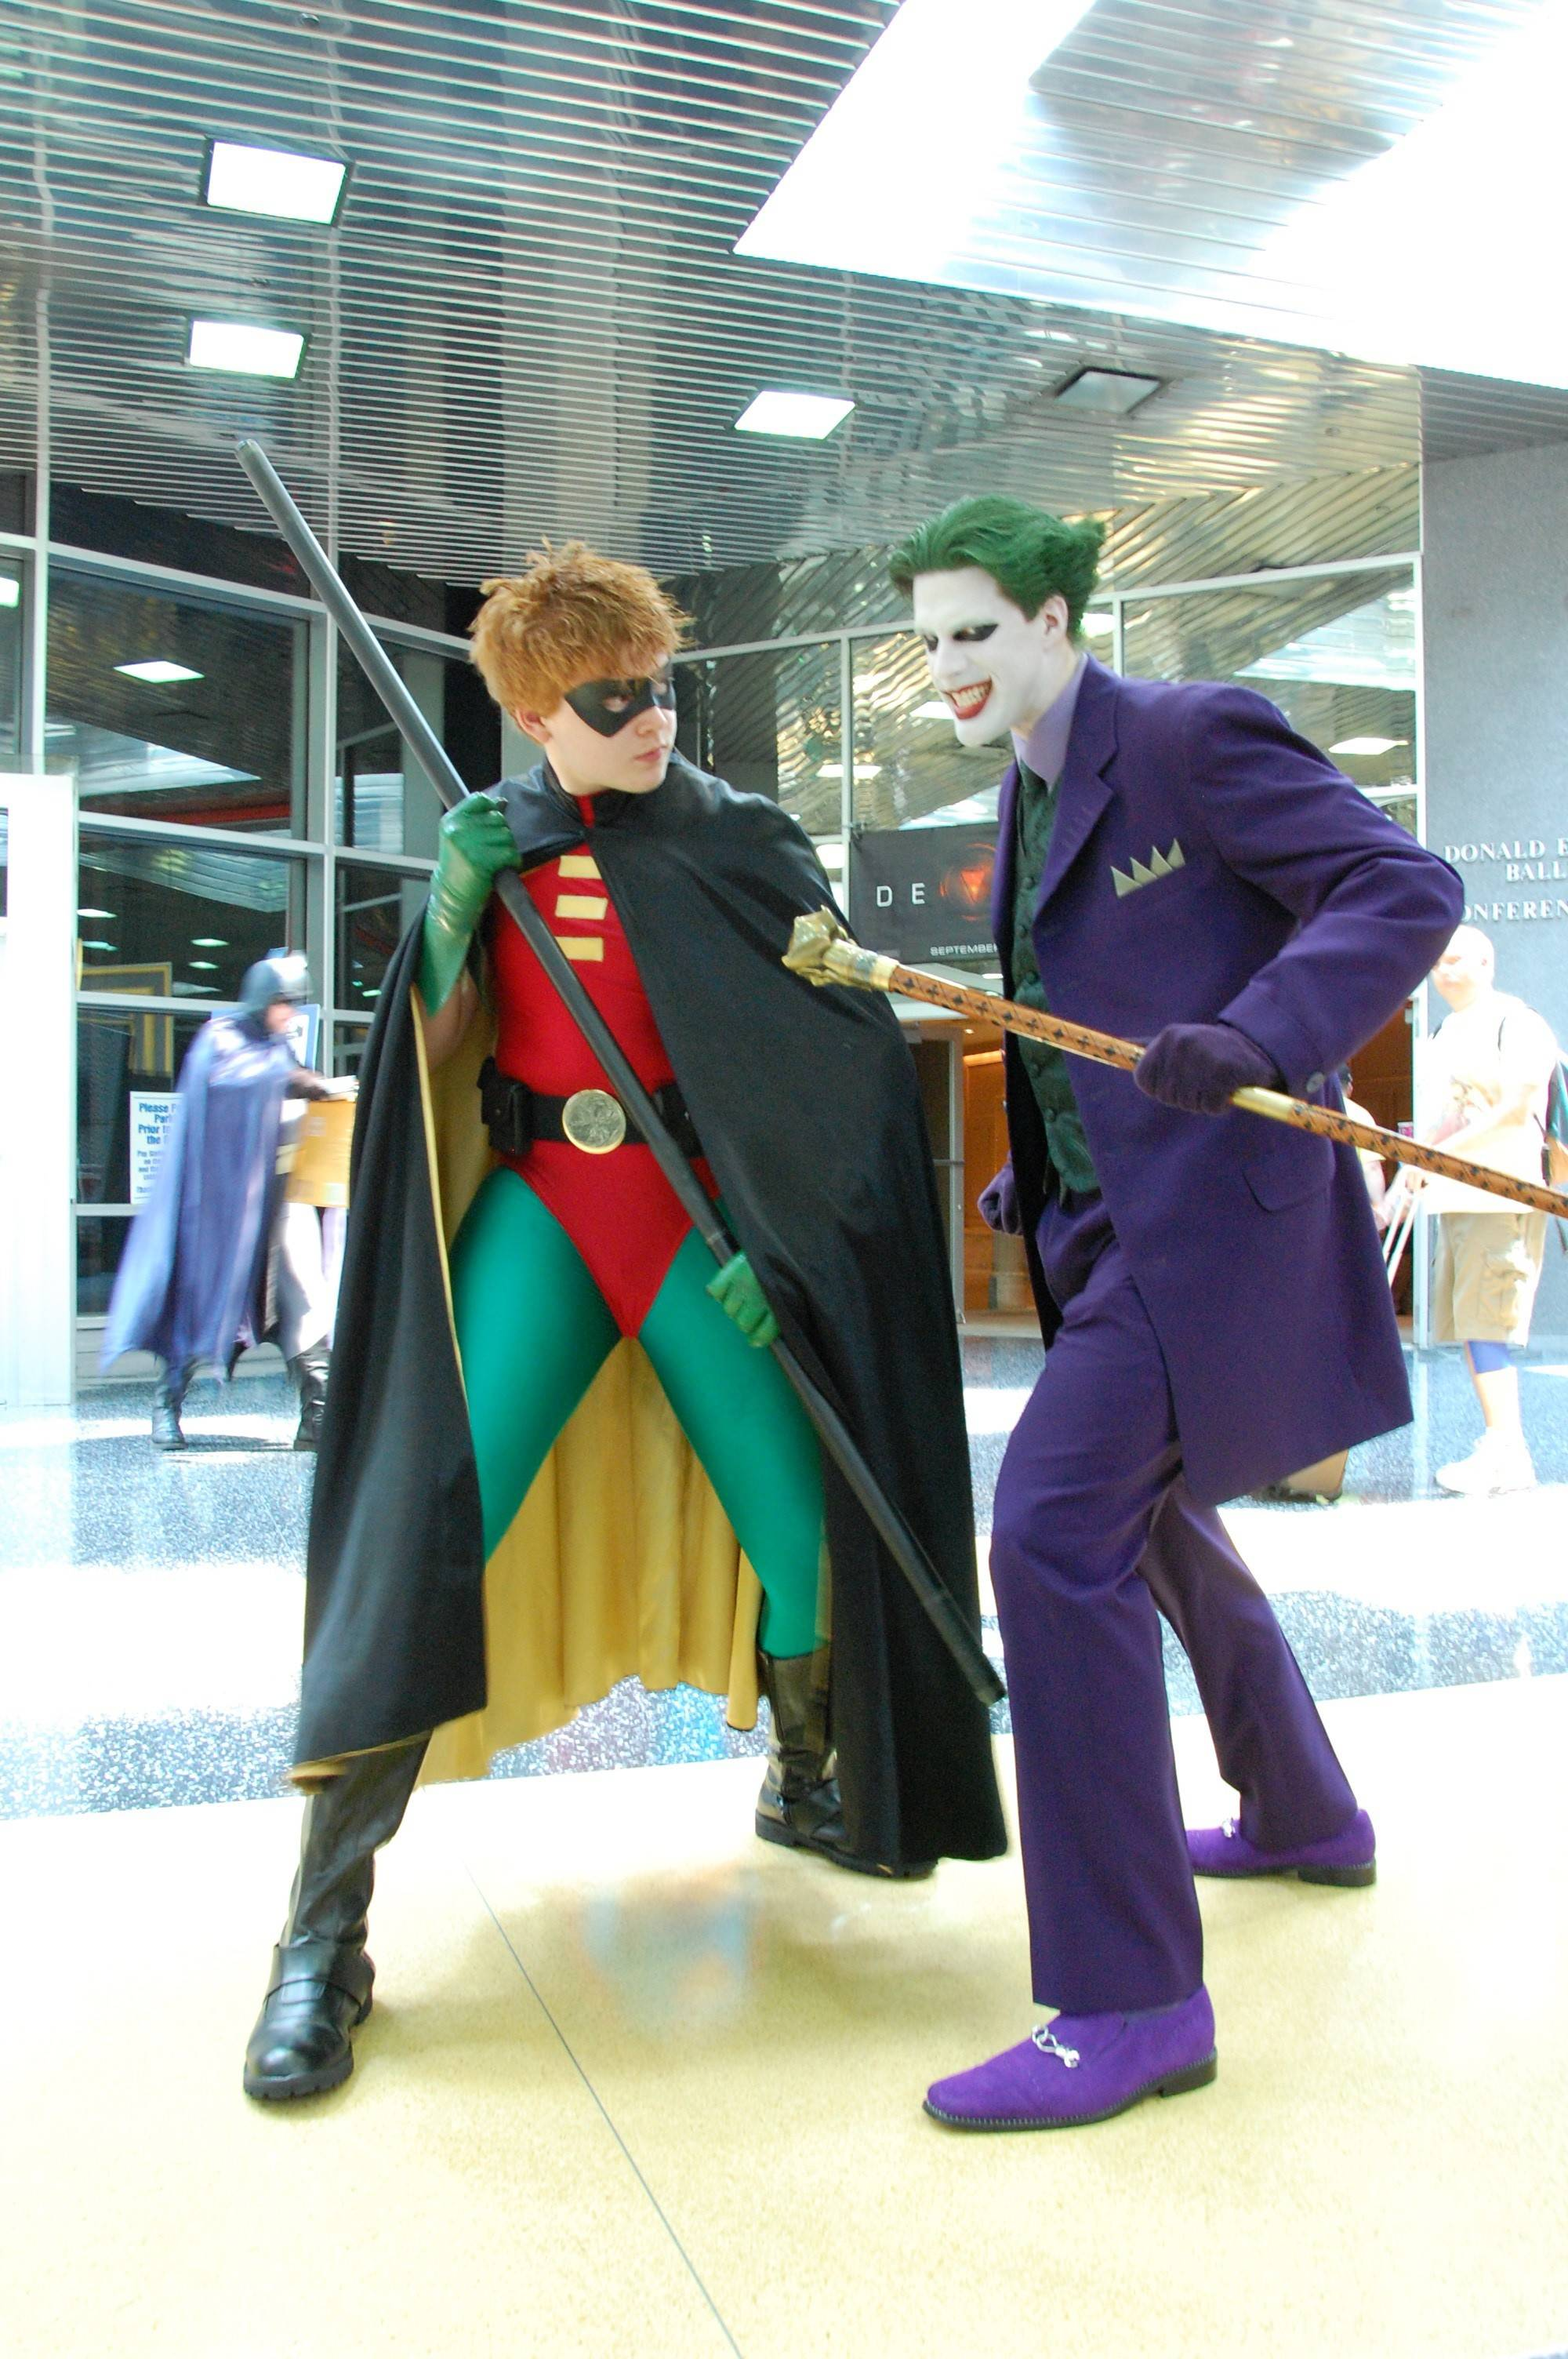 Fans like to dress up as their favorite comic-book and movie characters for Wizard World Chicago Comic Con.